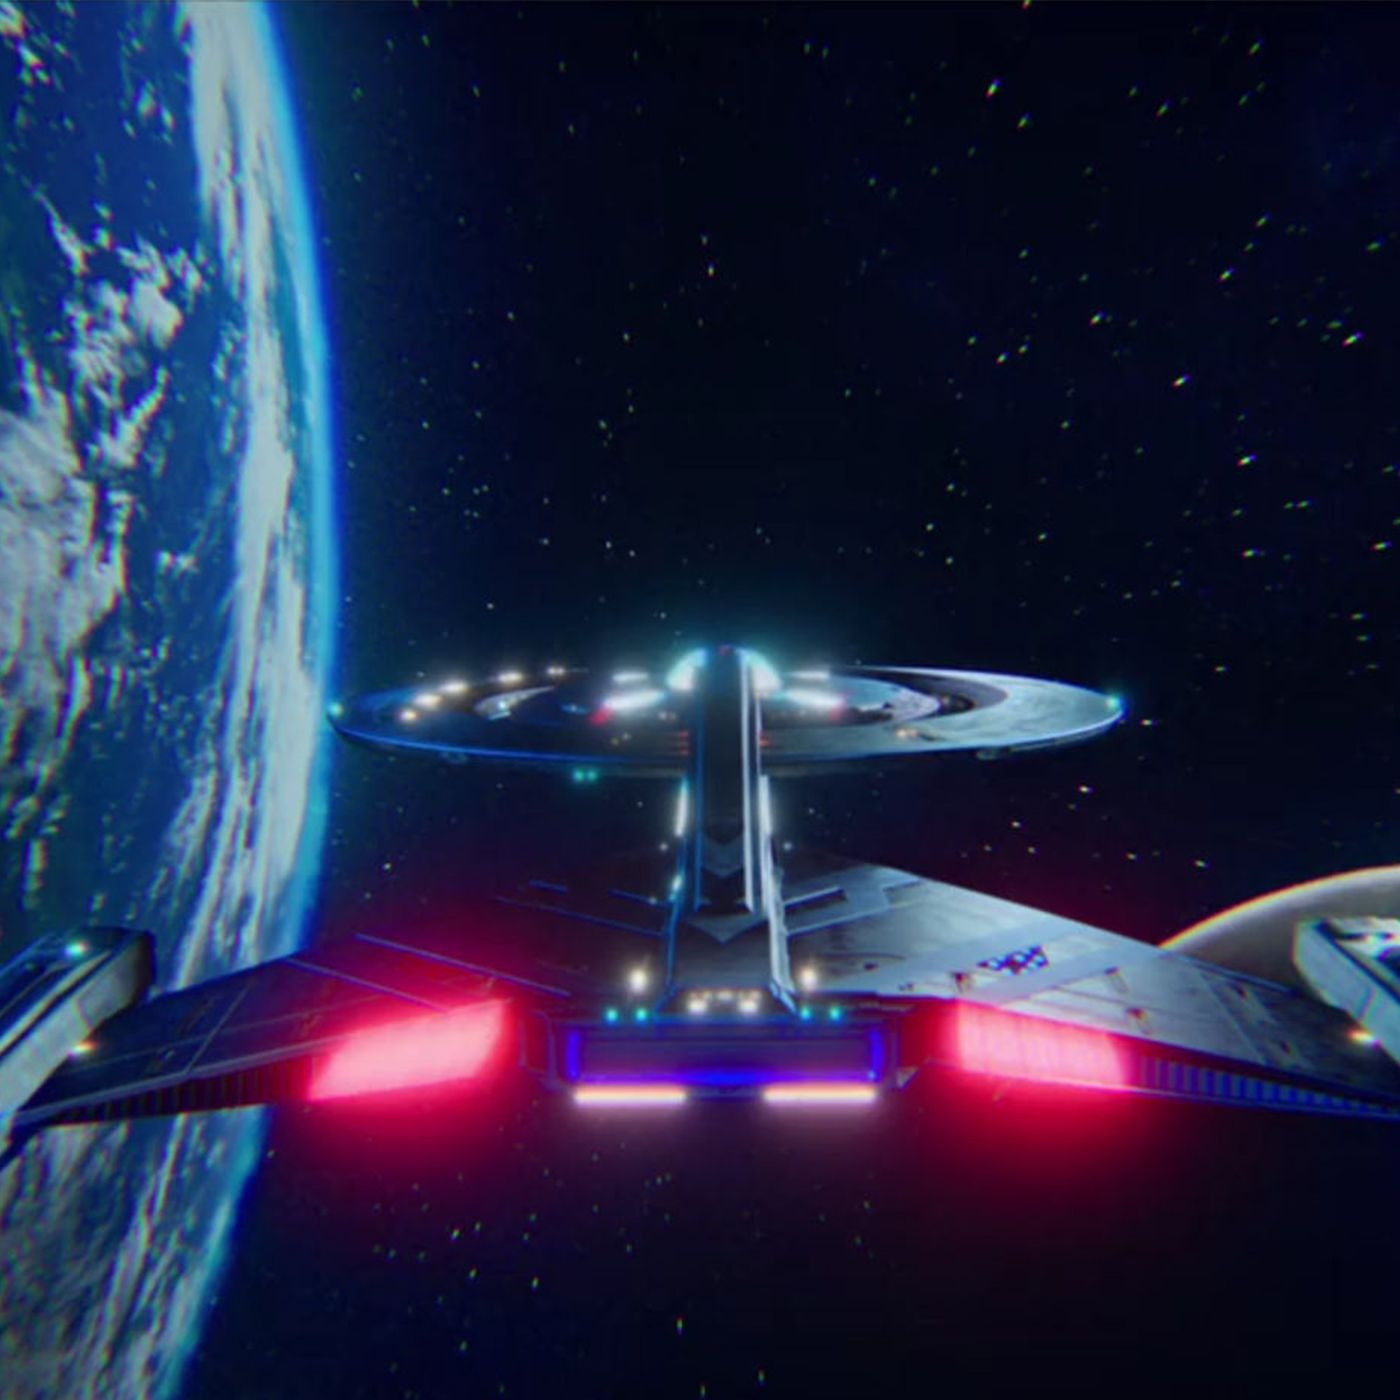 27. Star Trek: Discovery 1x09 - Into the Forest I Go